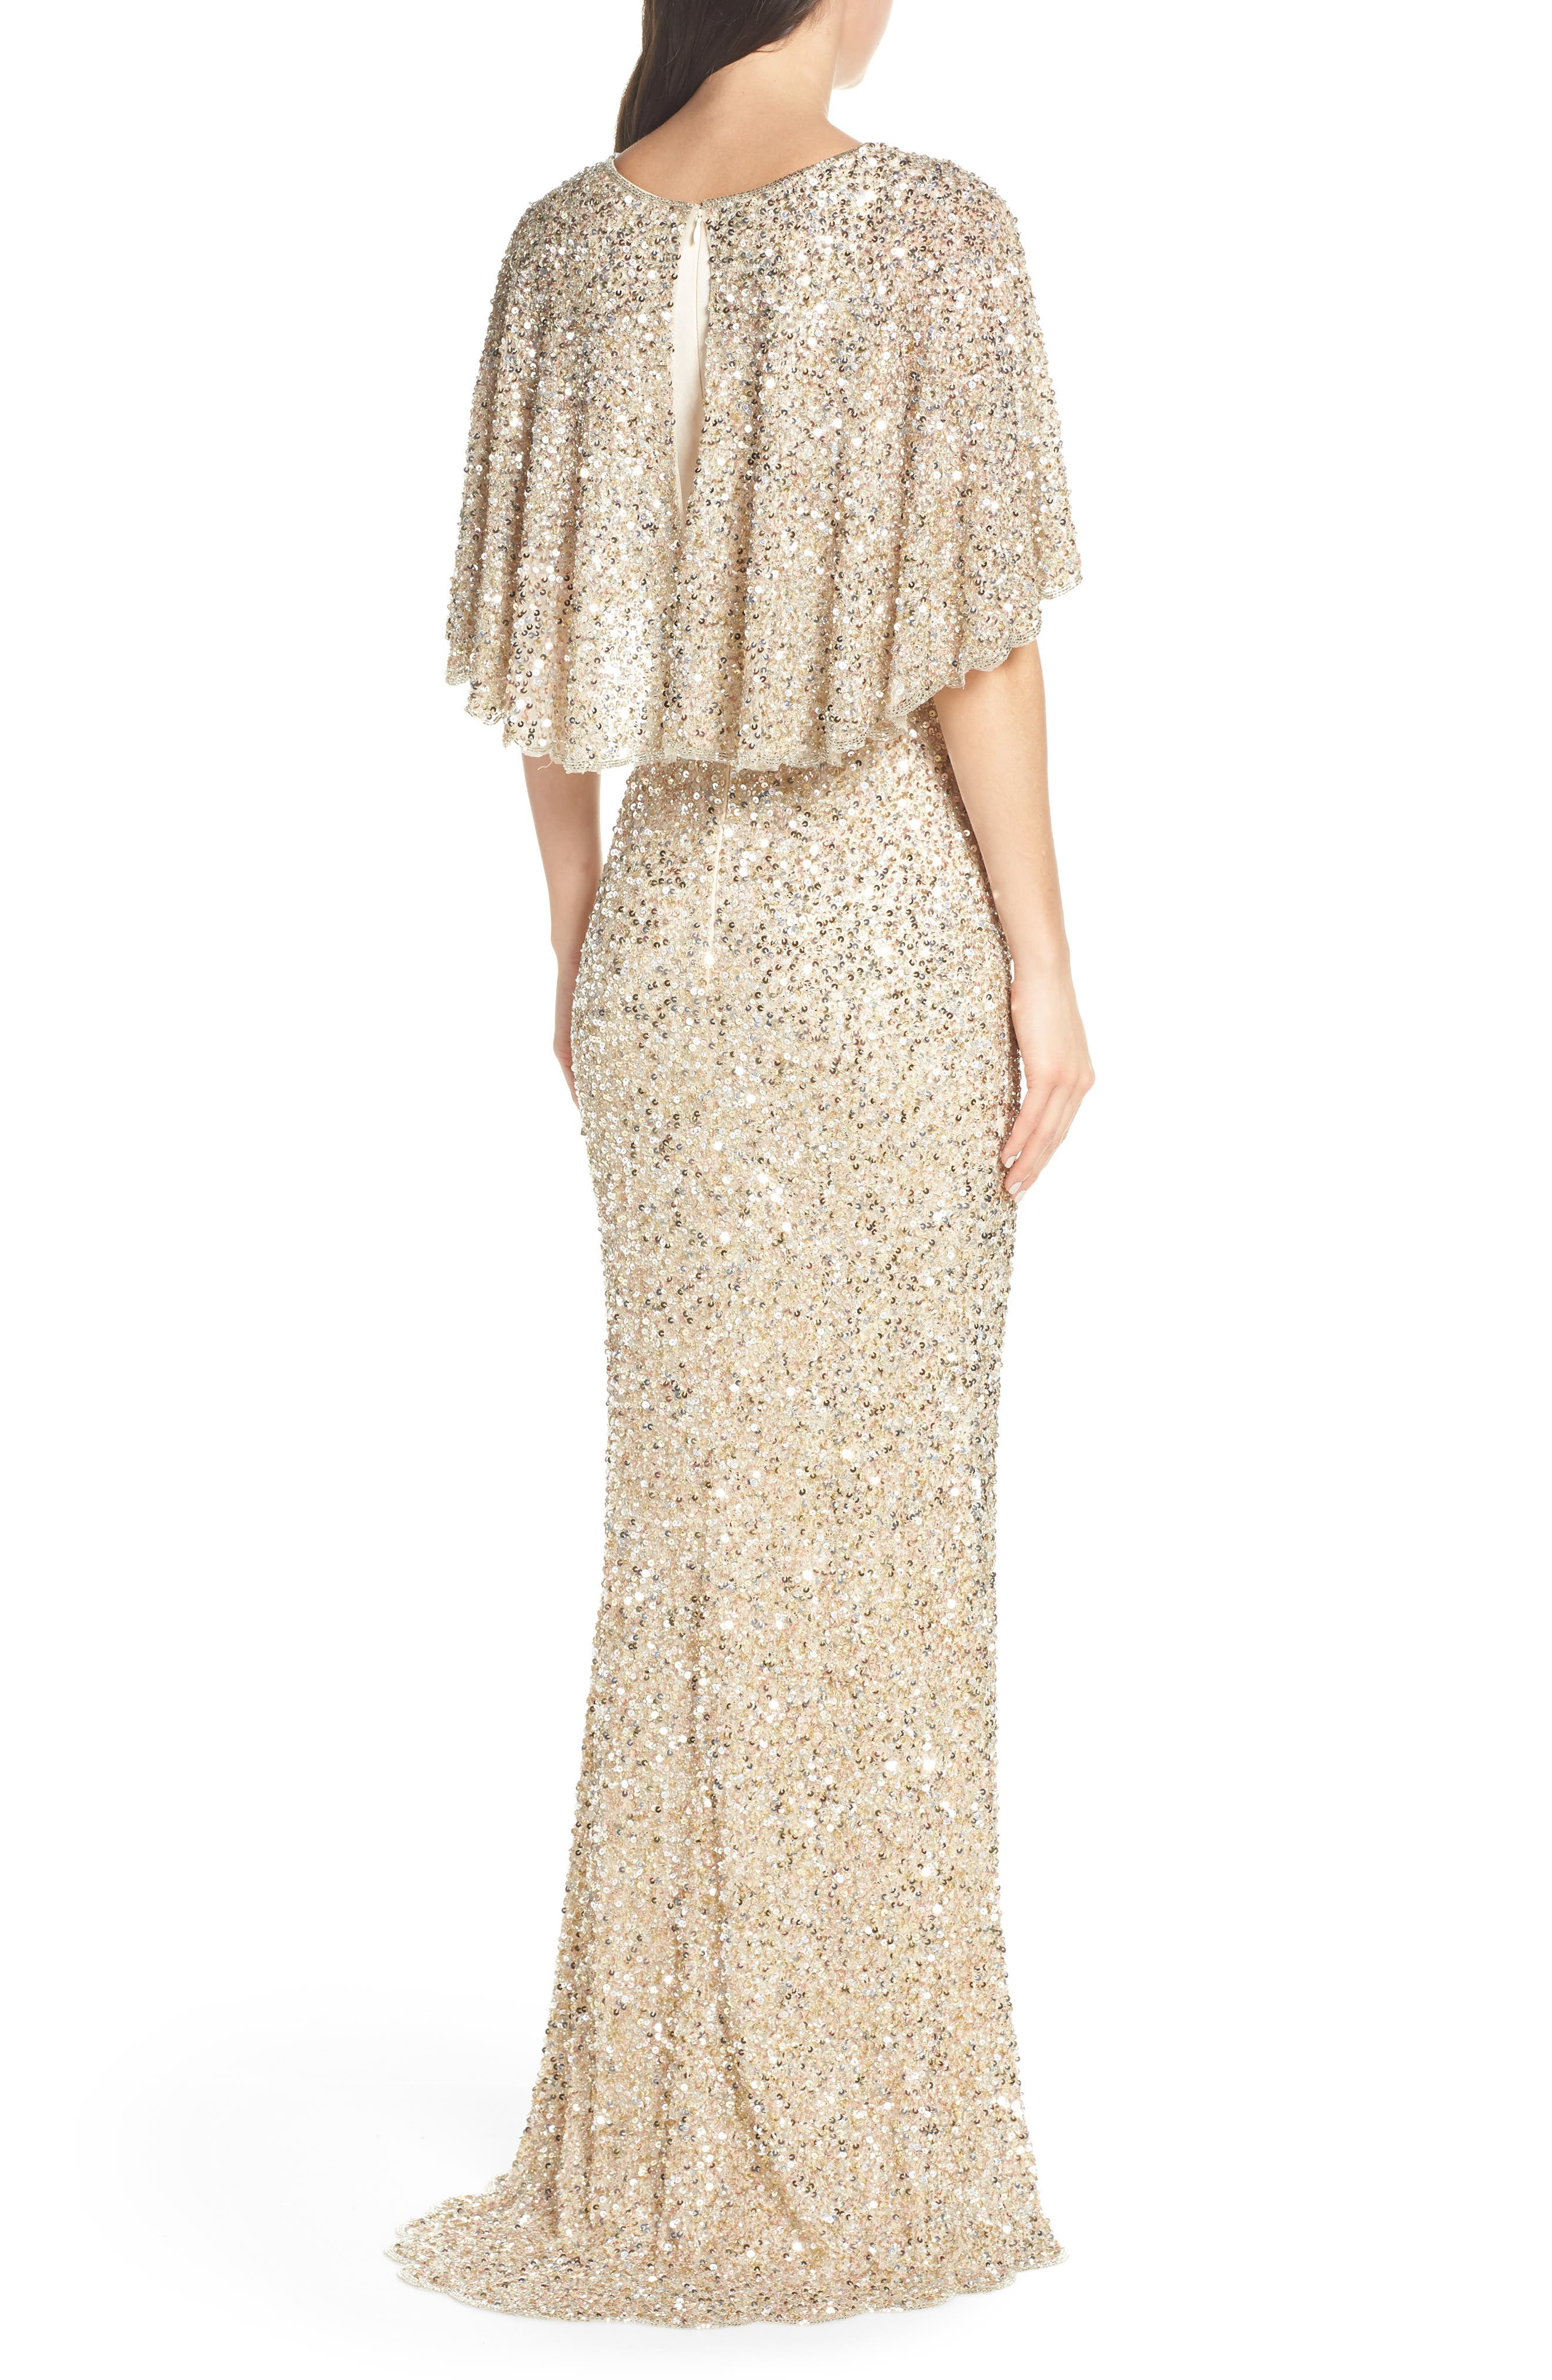 MAC DUGGAL, Beaded Capelet Sleeve Evening Dress, Alternate thumbnail 2, color, NUDE/ GOLD